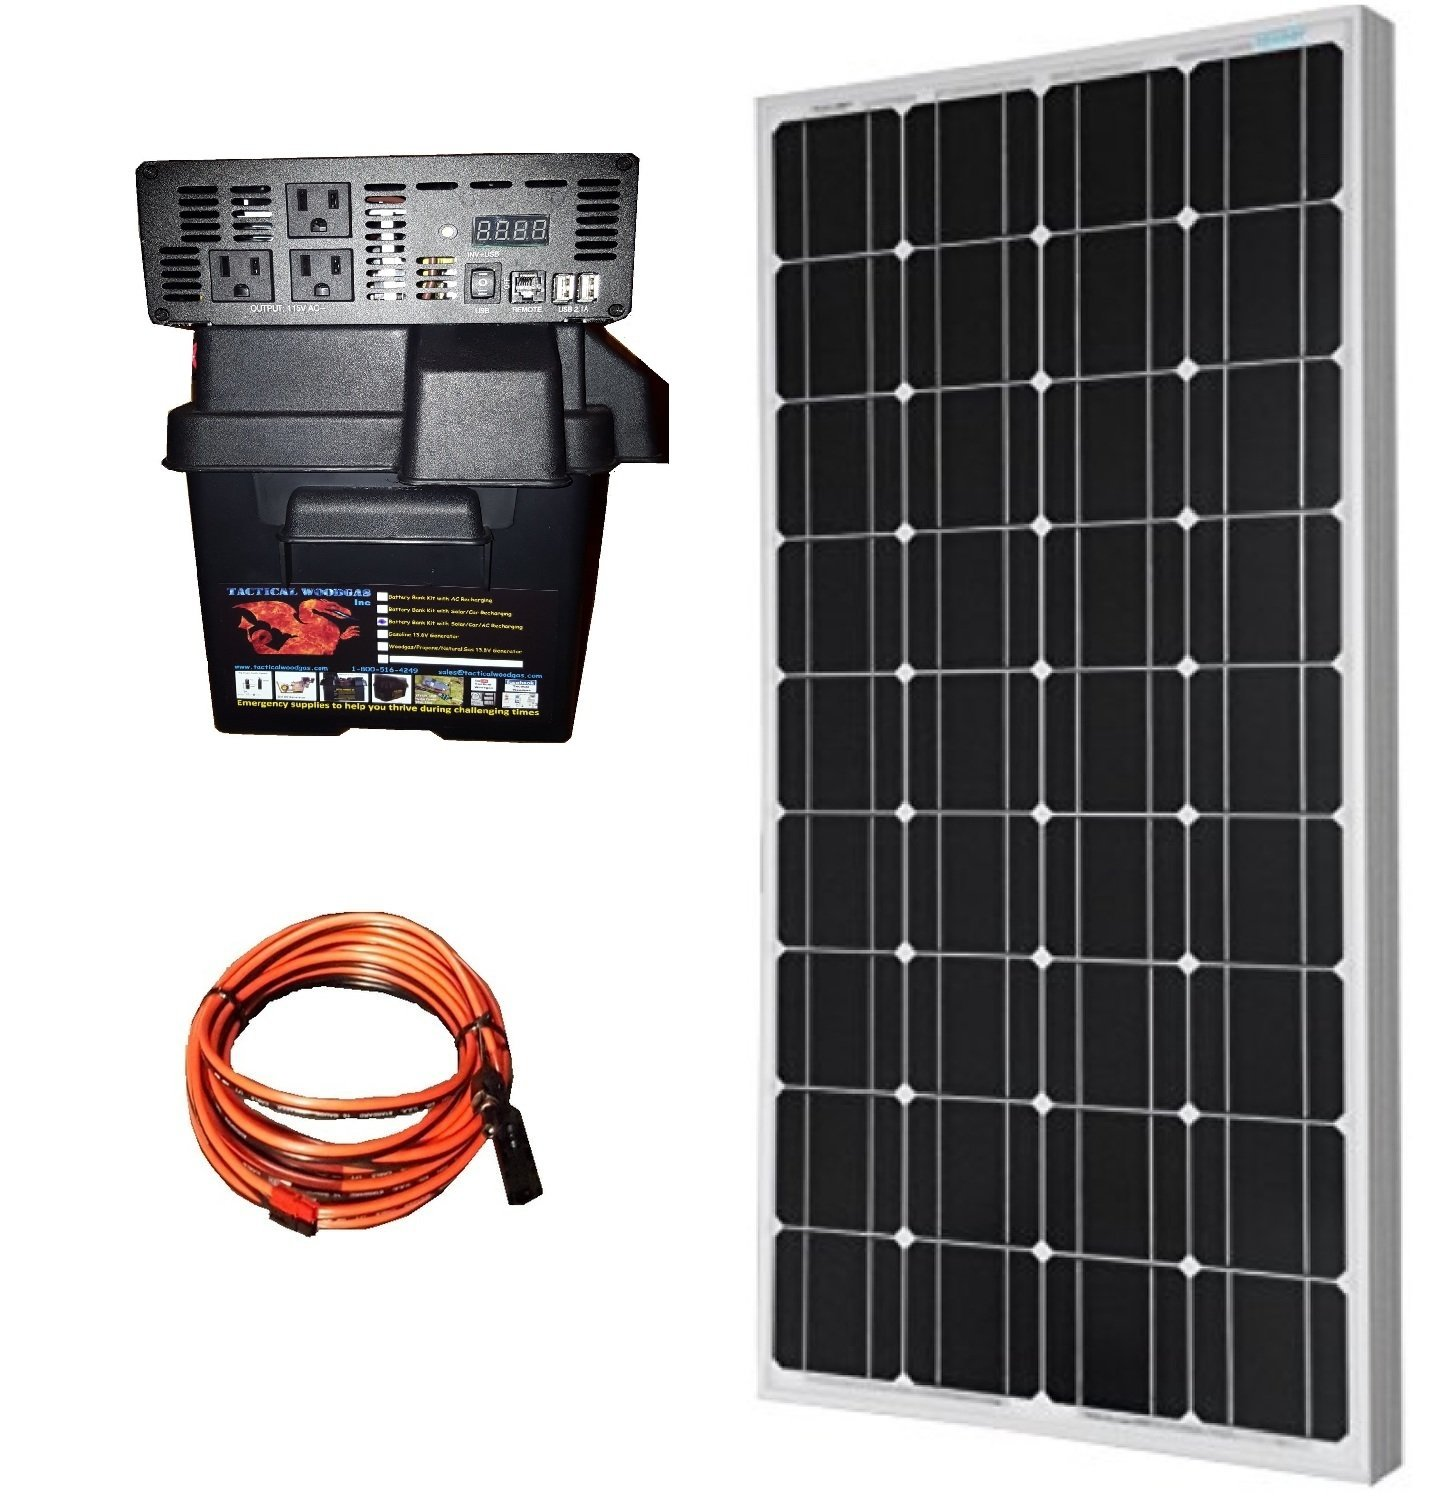 3000W Battery Bank PLUS 100W solar panel & connecting cable